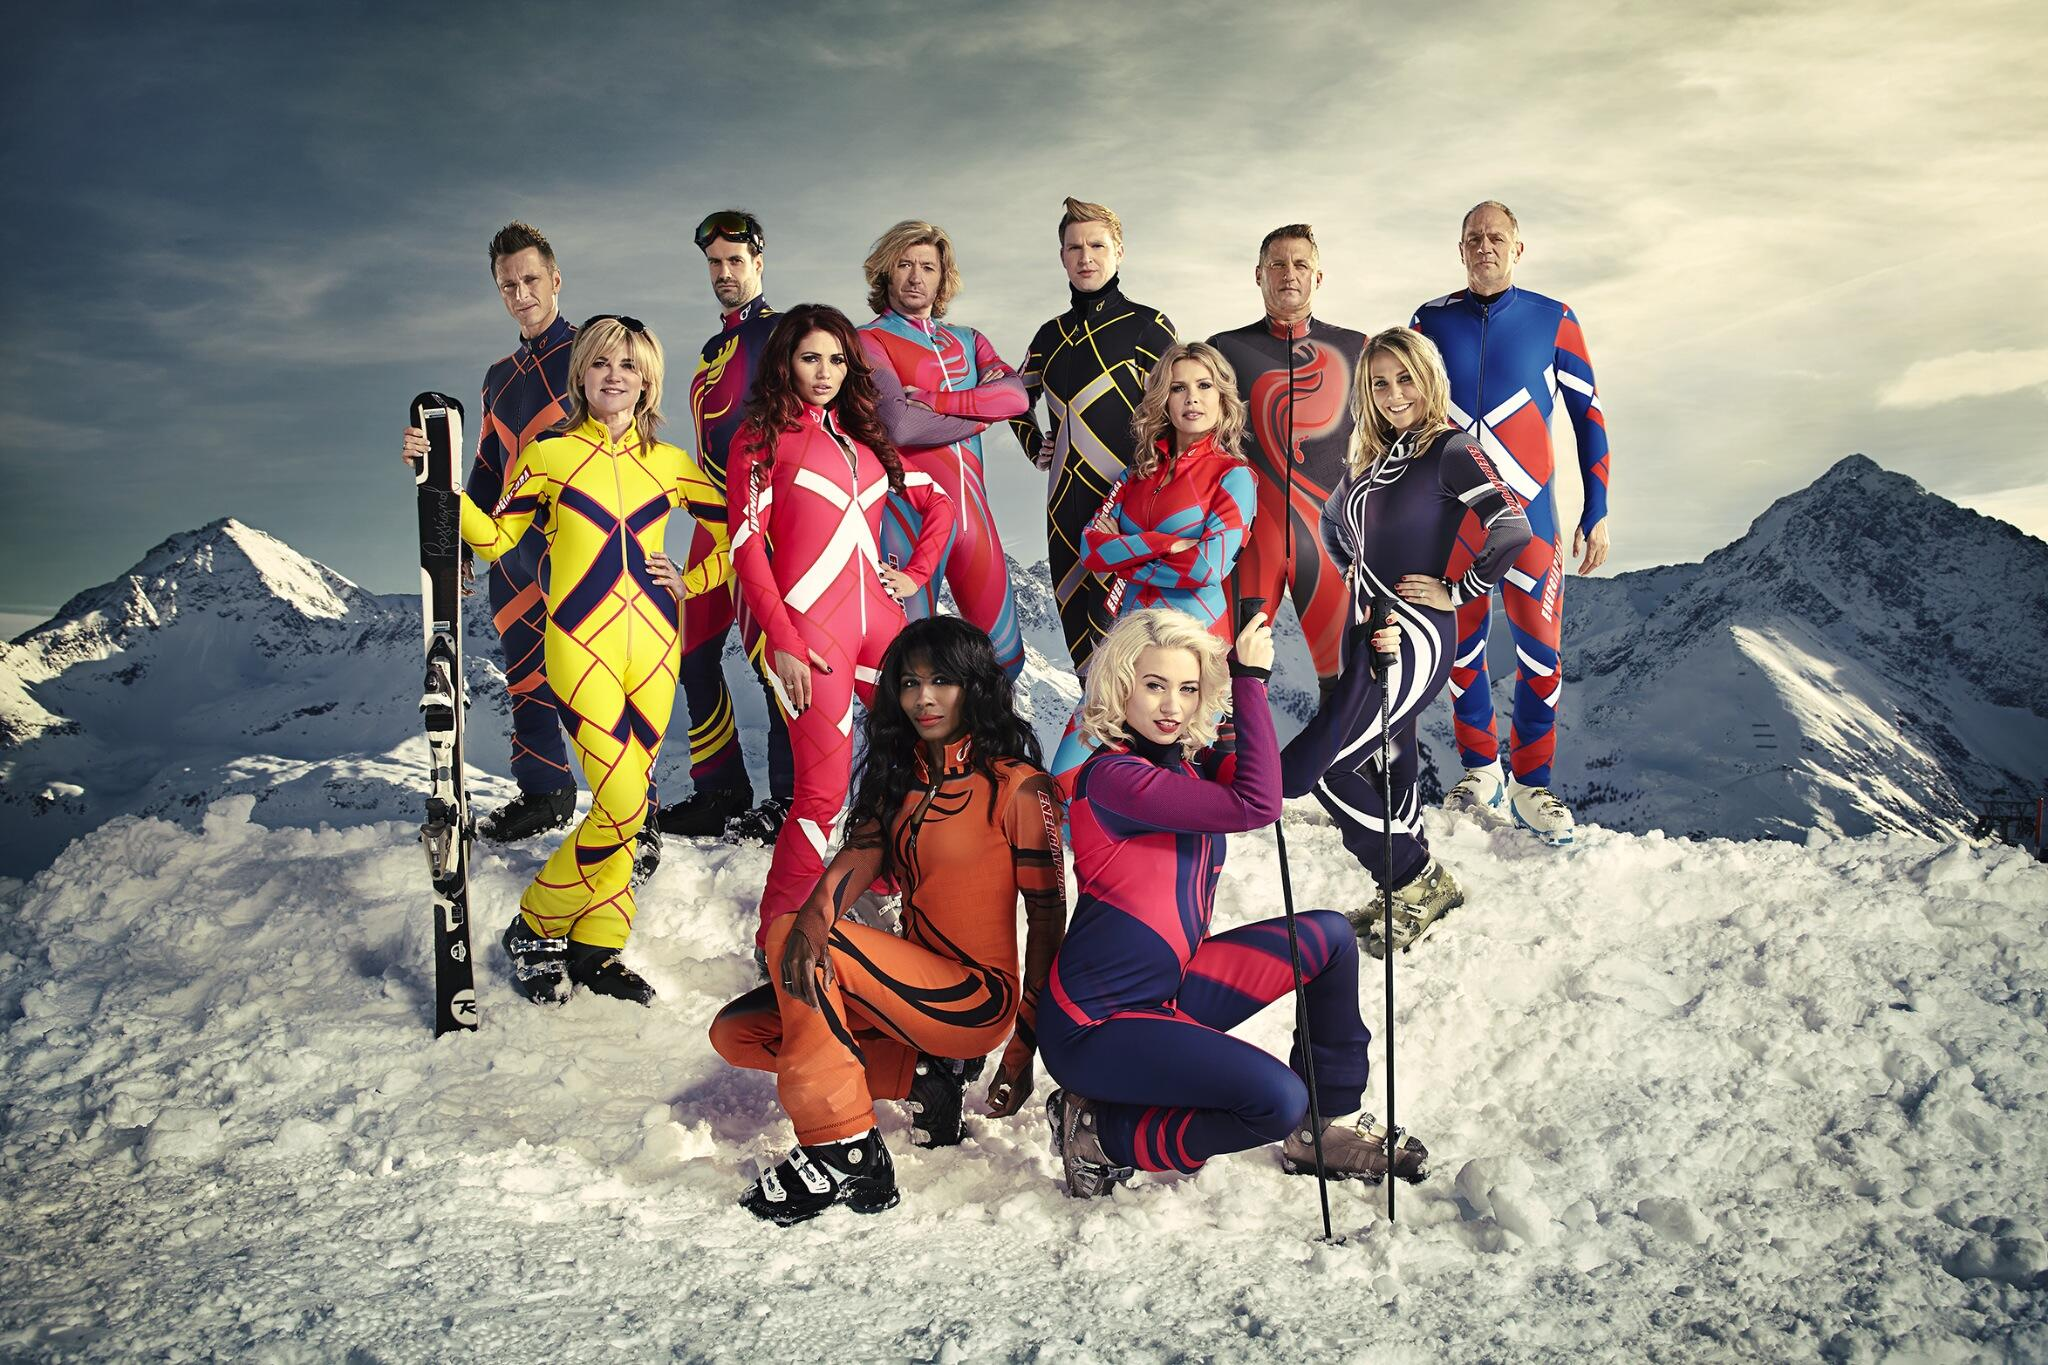 #thejump LIVE FINAL tonight at 9pm!! Who is gonna take the crown…eerrrrr 'BELL'!!?? http://t.co/BmQCjFRCbG